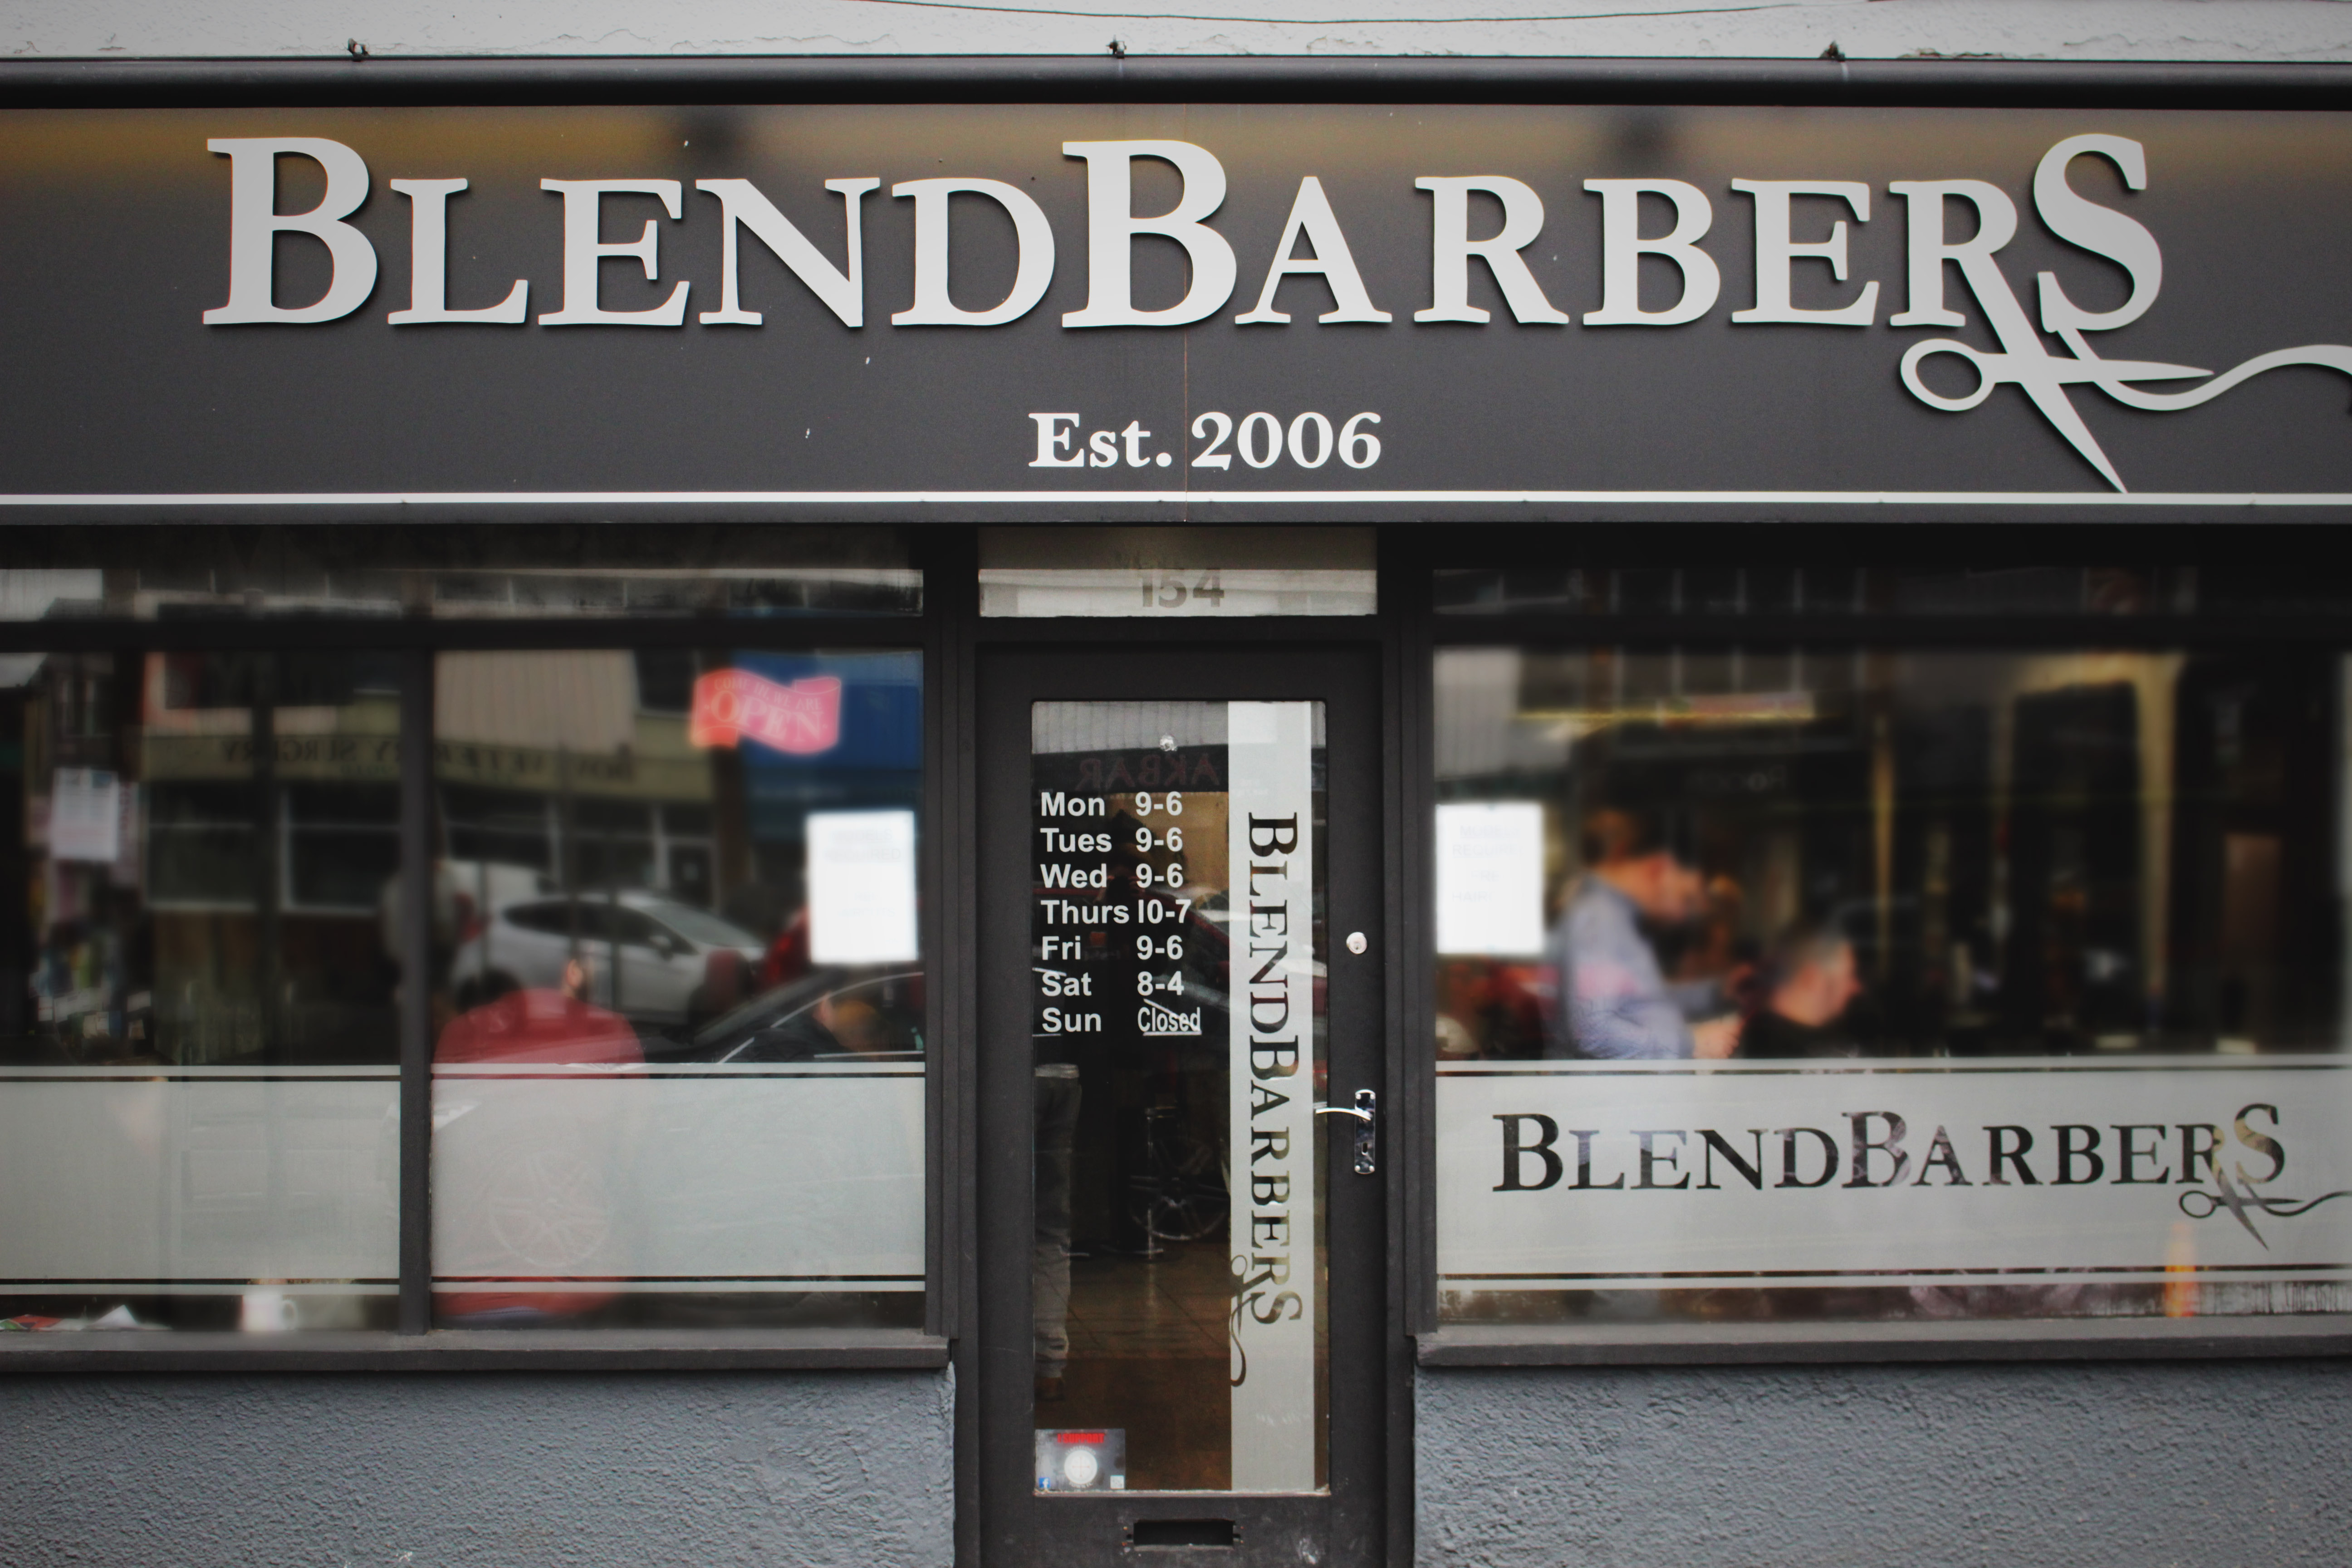 Shop front for blend barbers with opening hours